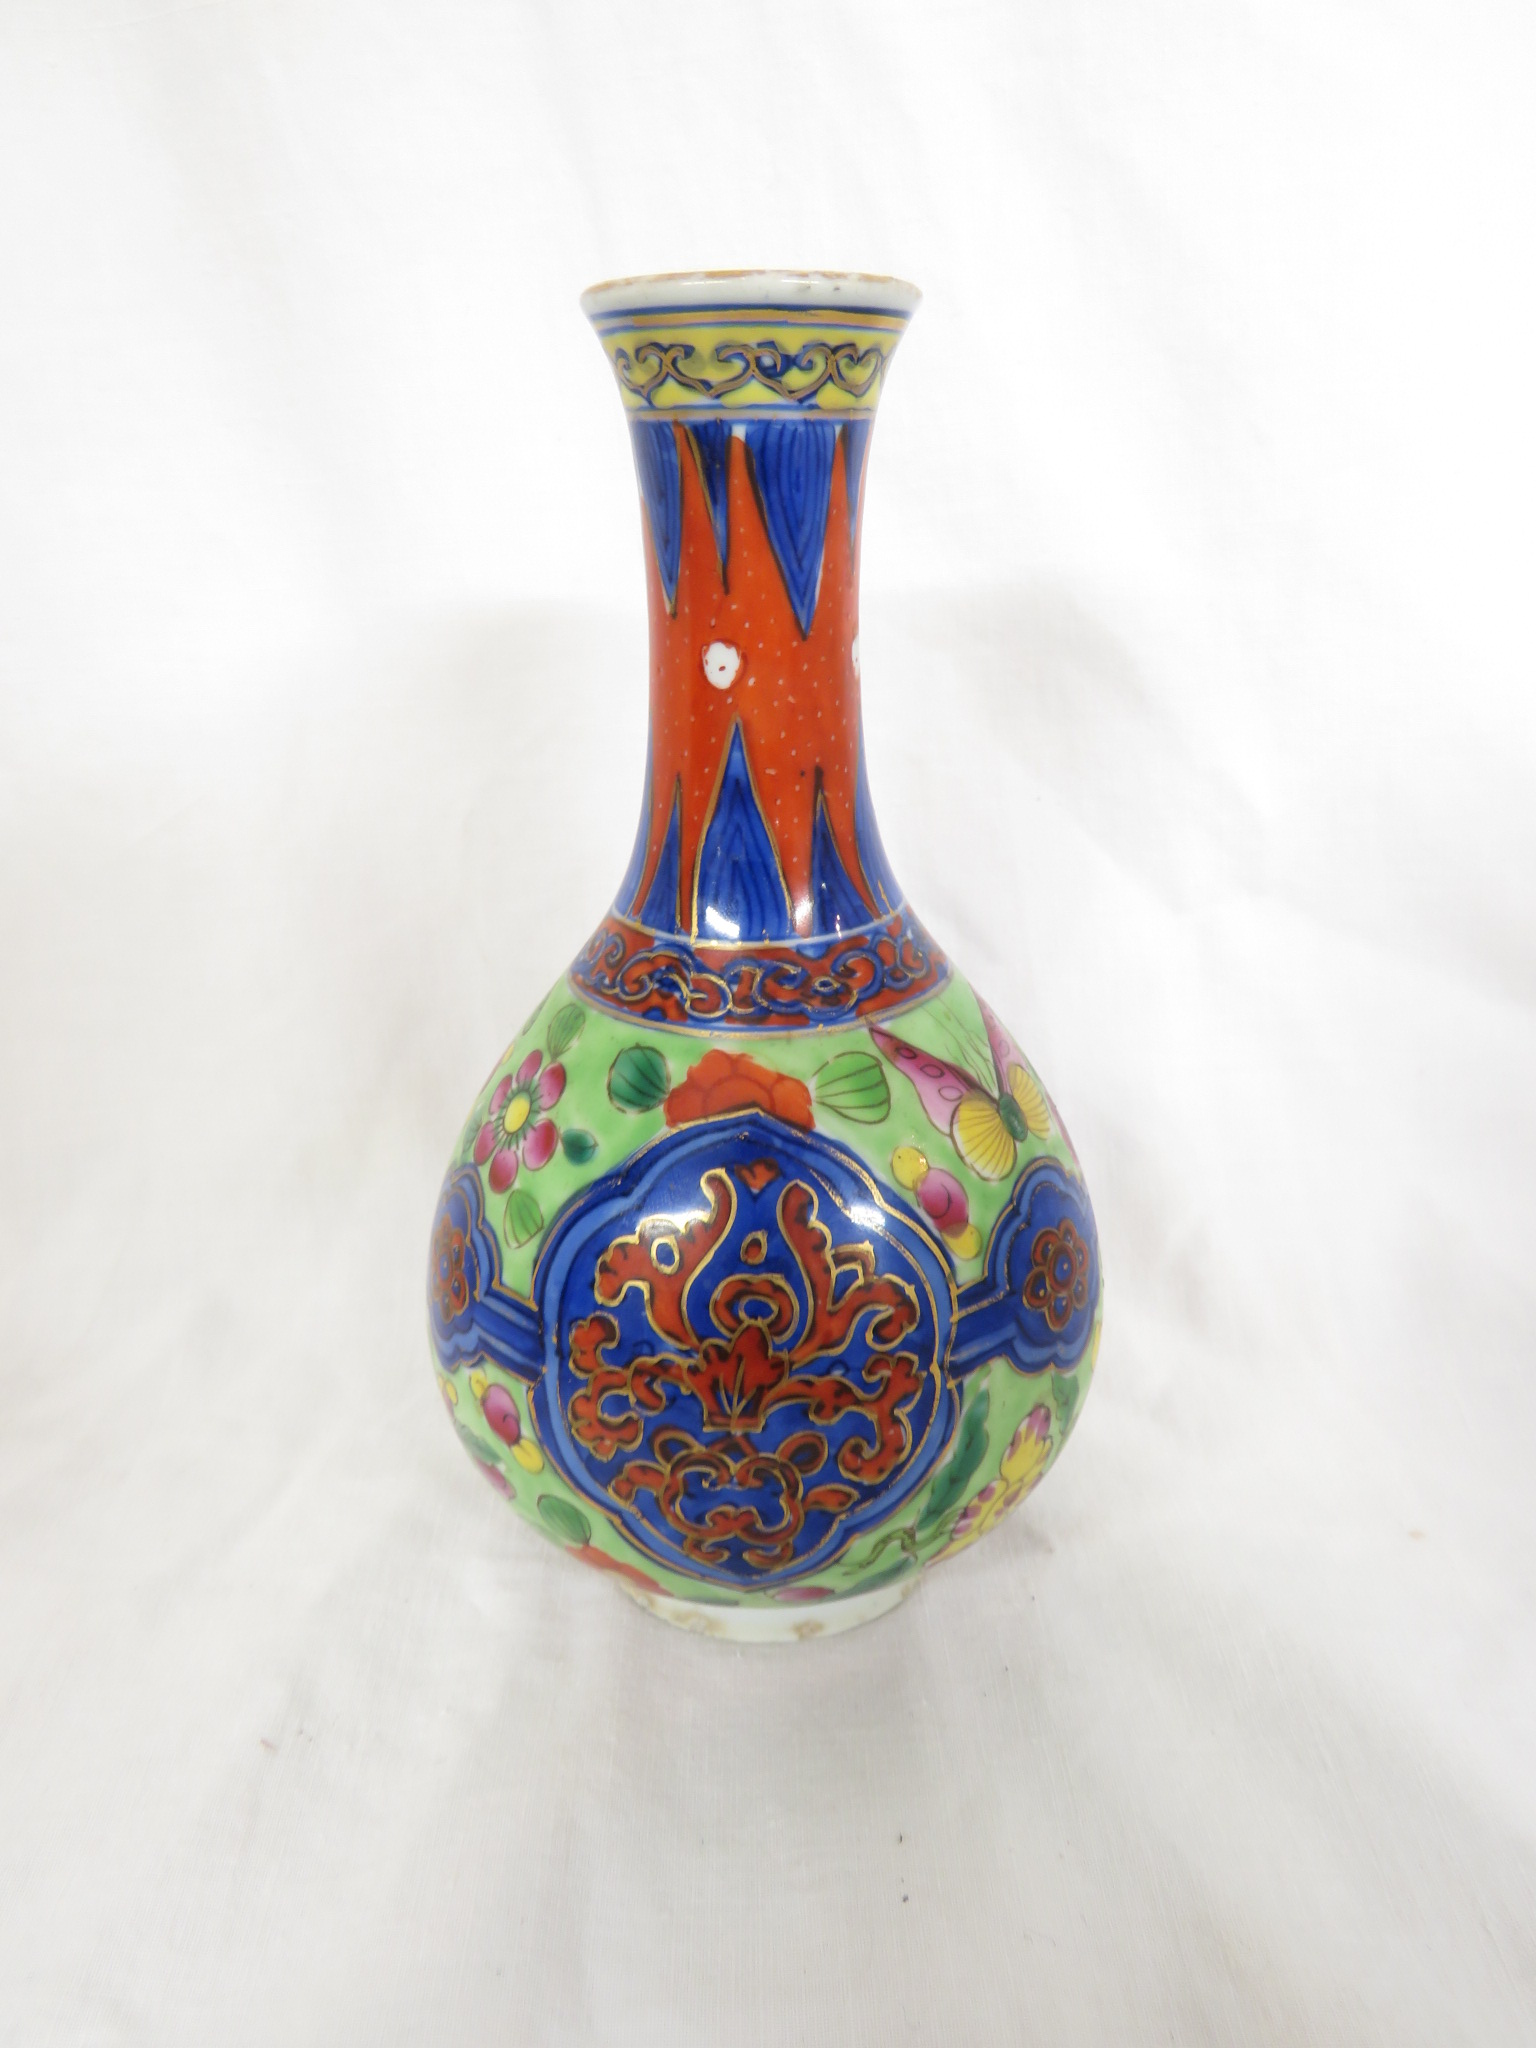 Lot 101 - Satsuma type pottery double gourd vase gilded and enamelled with flowers, birds and patterned